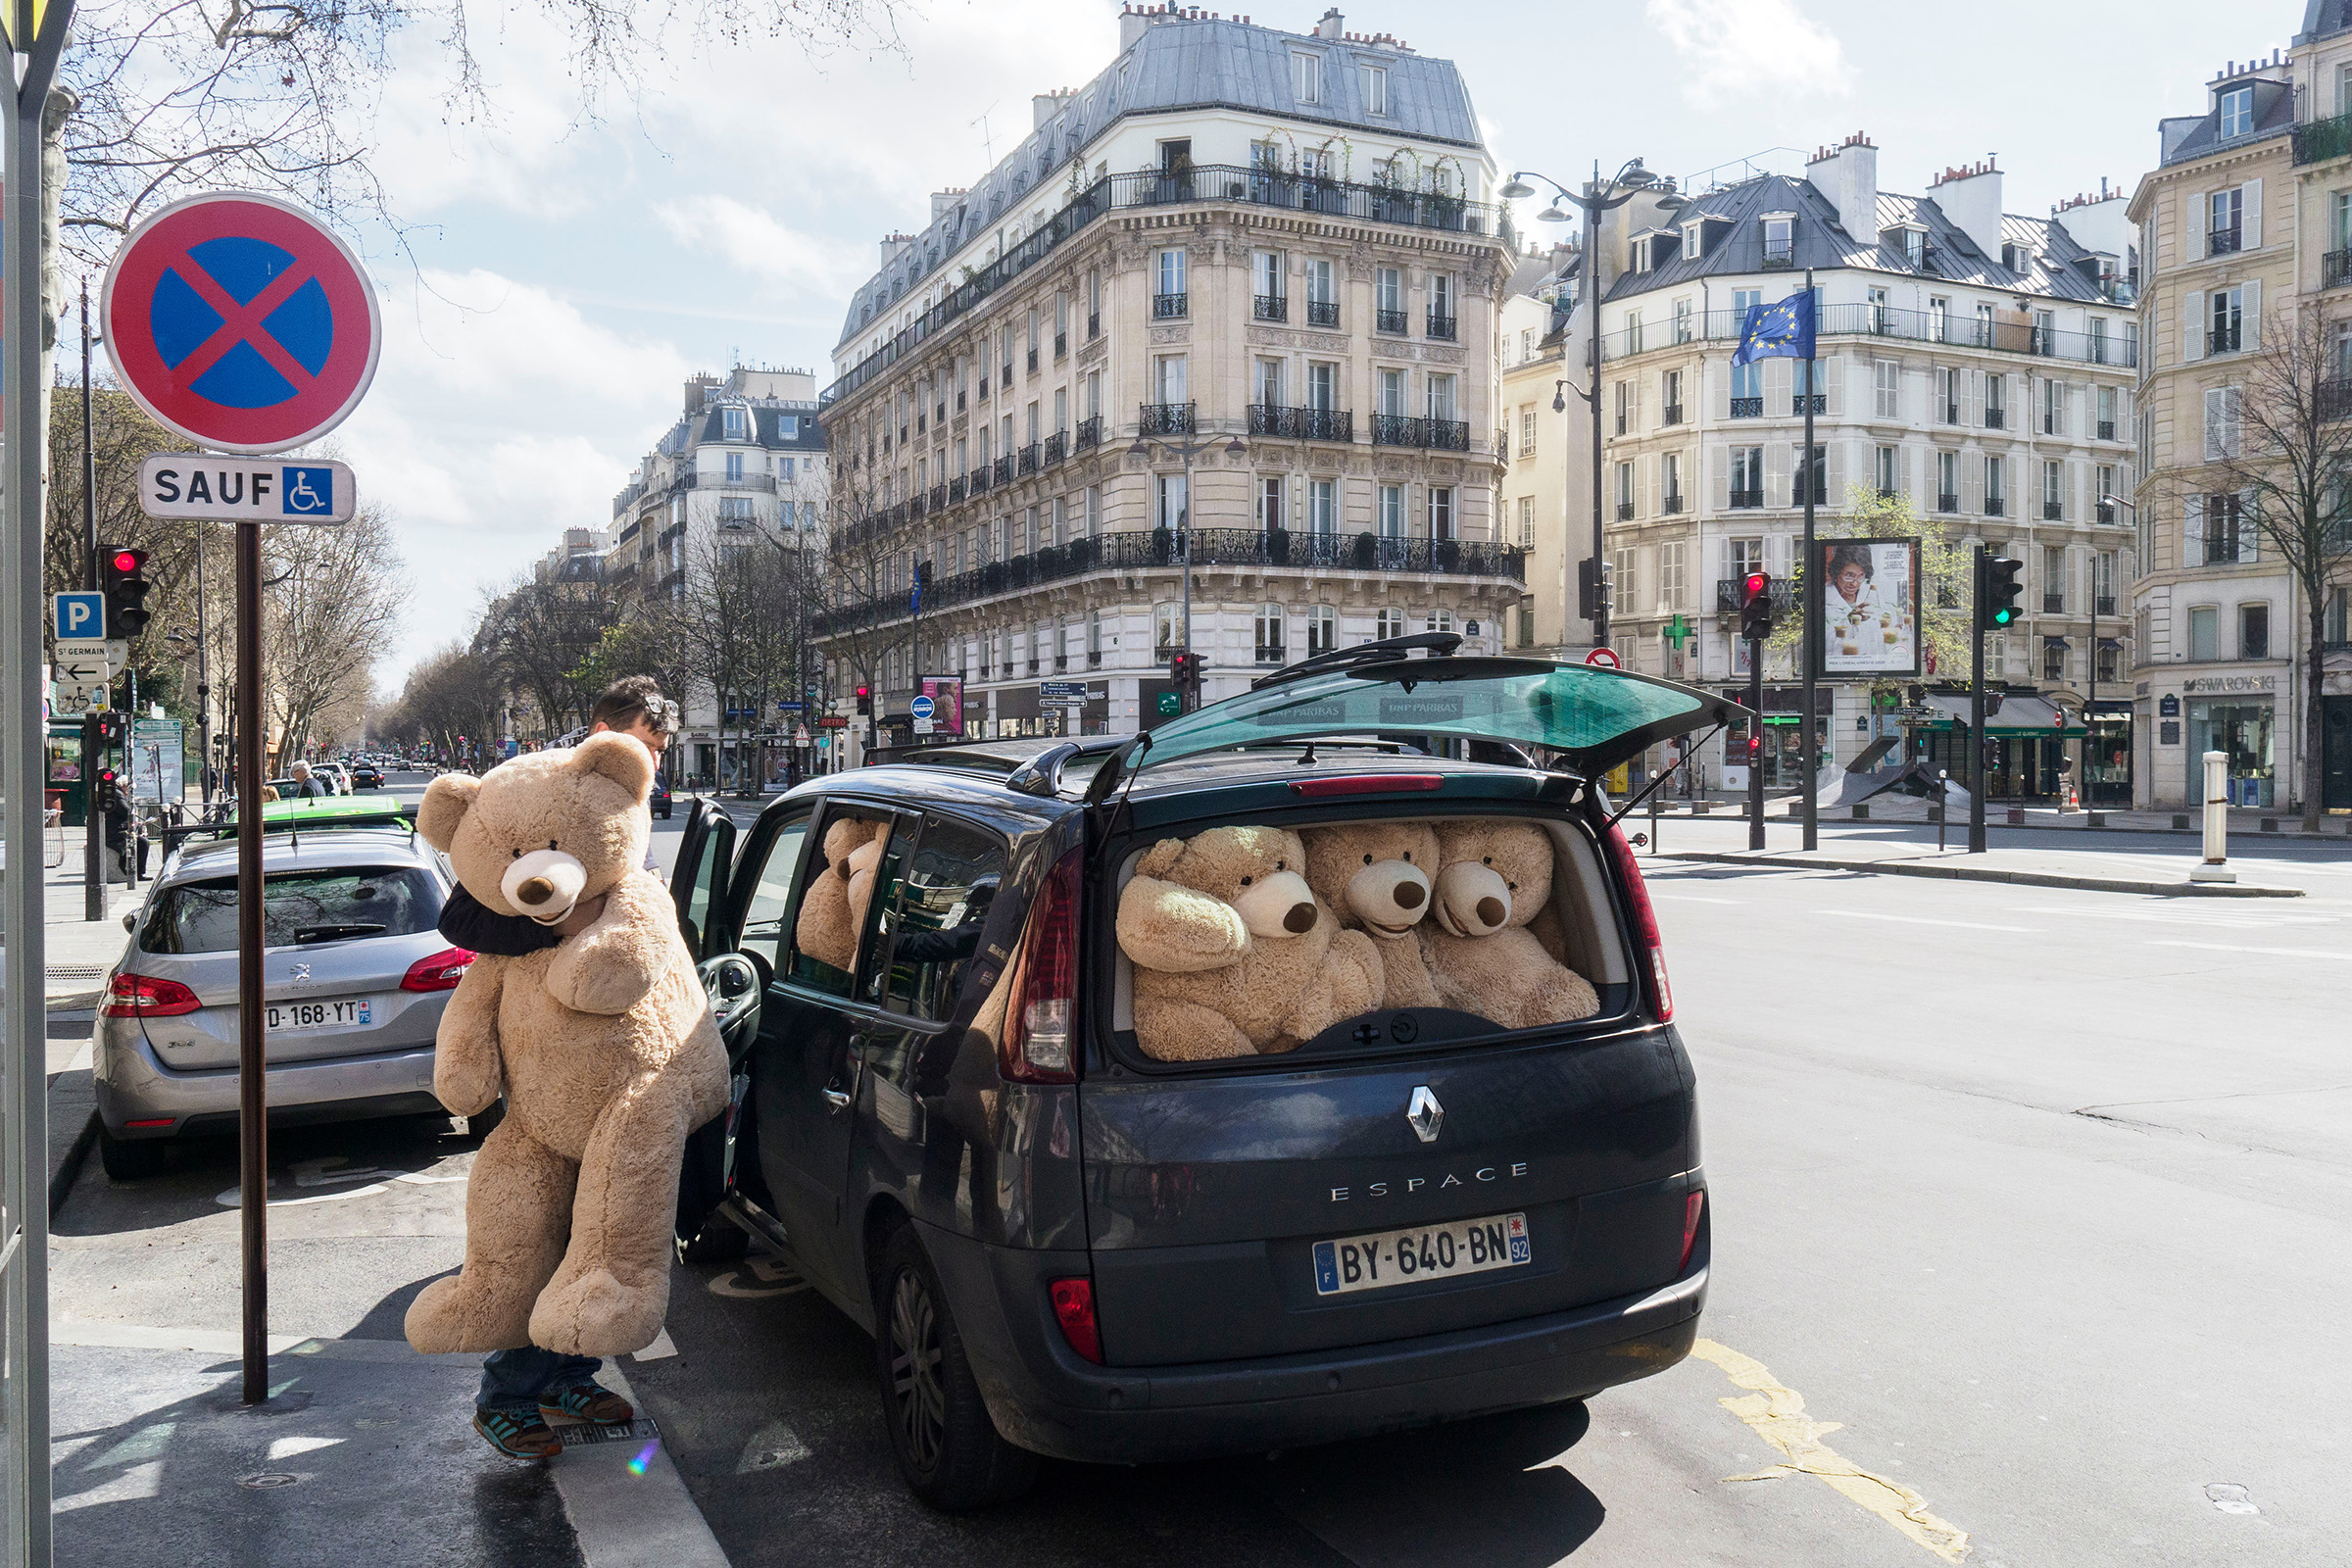 A man distributes giant teddy bears along emptied streets in Paris on March 15, the first day of the city's lockdown; nine days later, residents were allowed outside only for exercise once a day, within 1 km of their homes